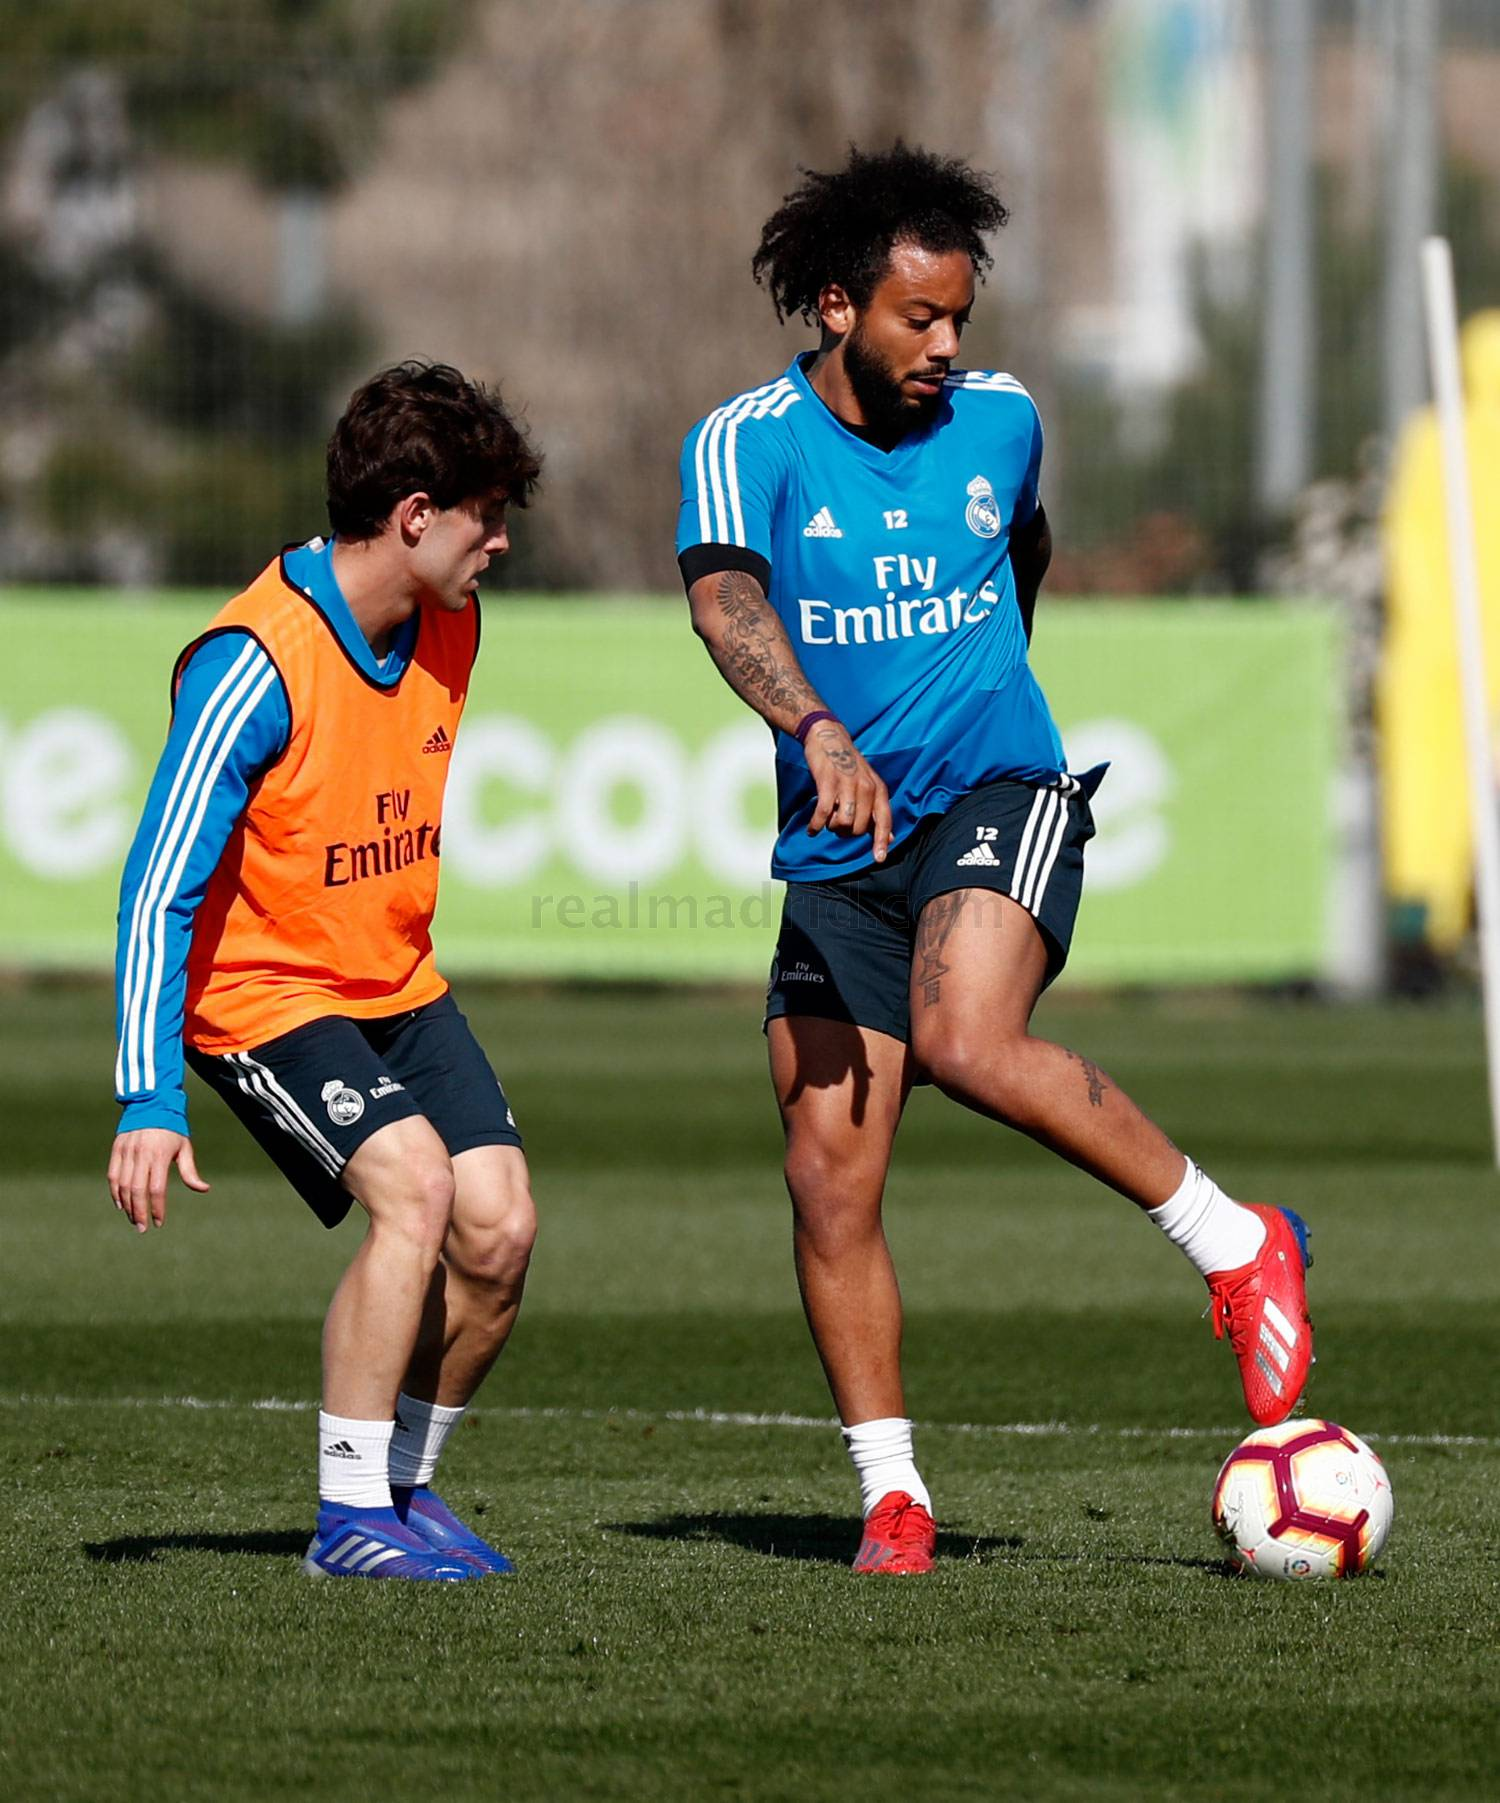 Real Madrid - Entrenamiento del Real Madrid - 28-02-2019